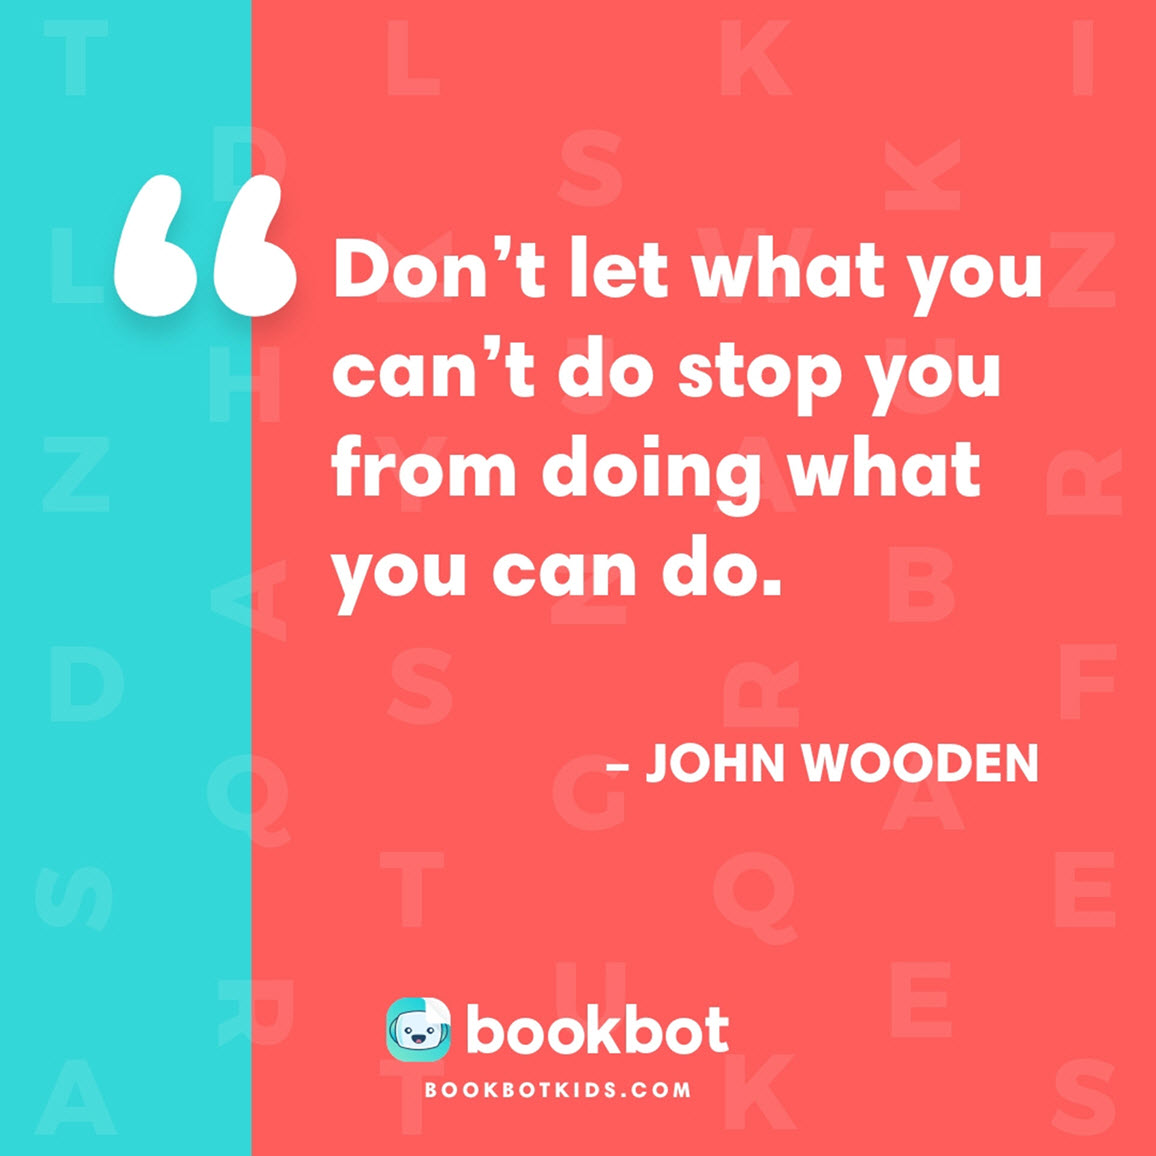 Don't let what you can't do stop you from doing what you can do. – John Wooden